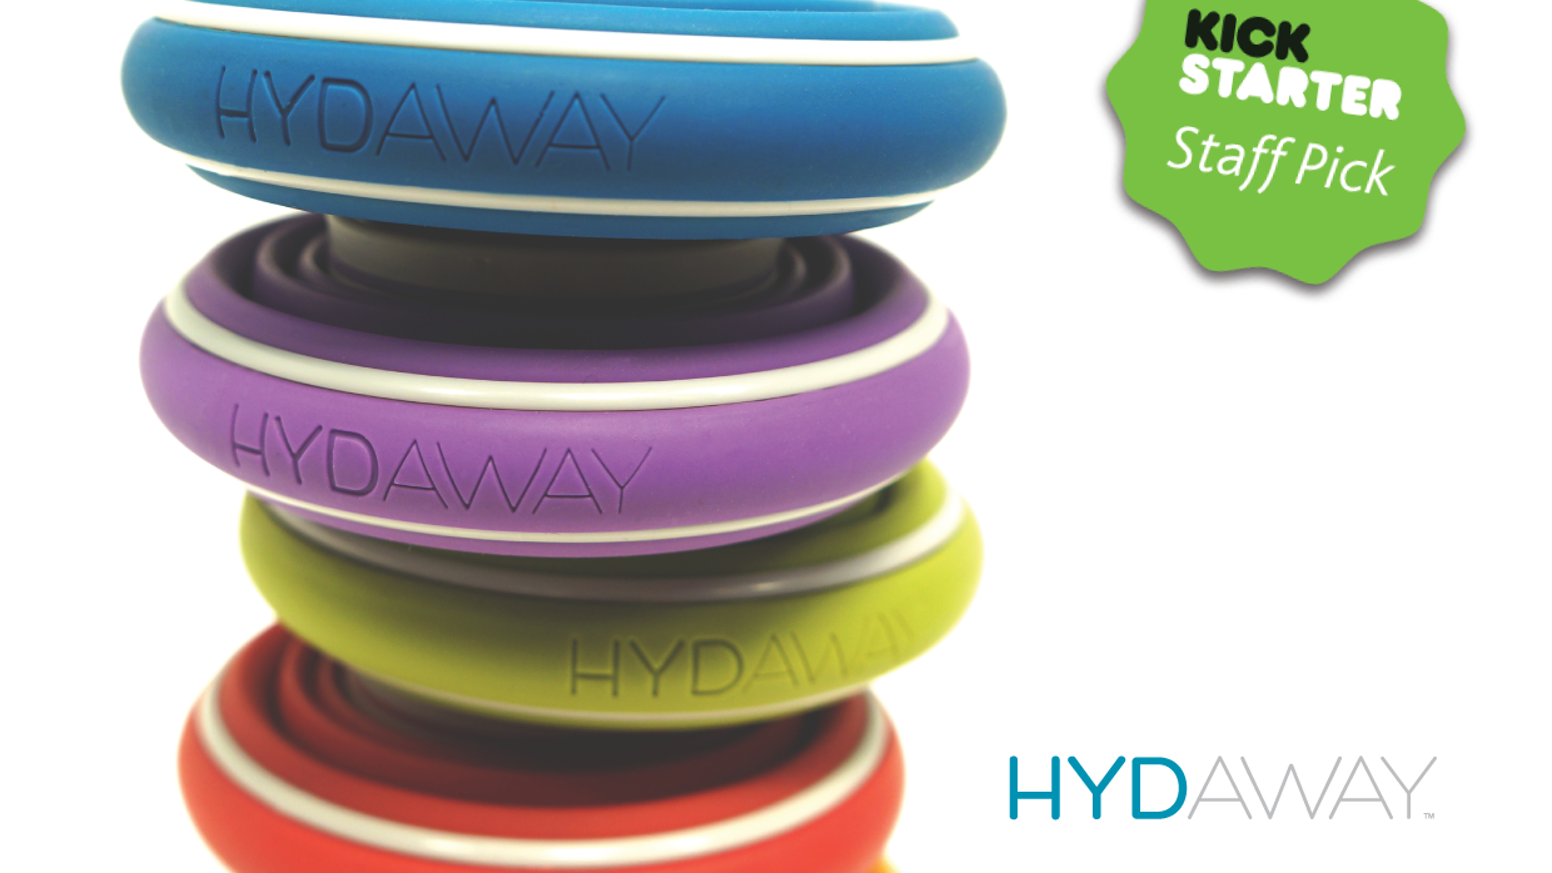 HYDAWAY is a handy alternative to disposable plastic water bottles - it folds down easily to fit in almost any pocket!